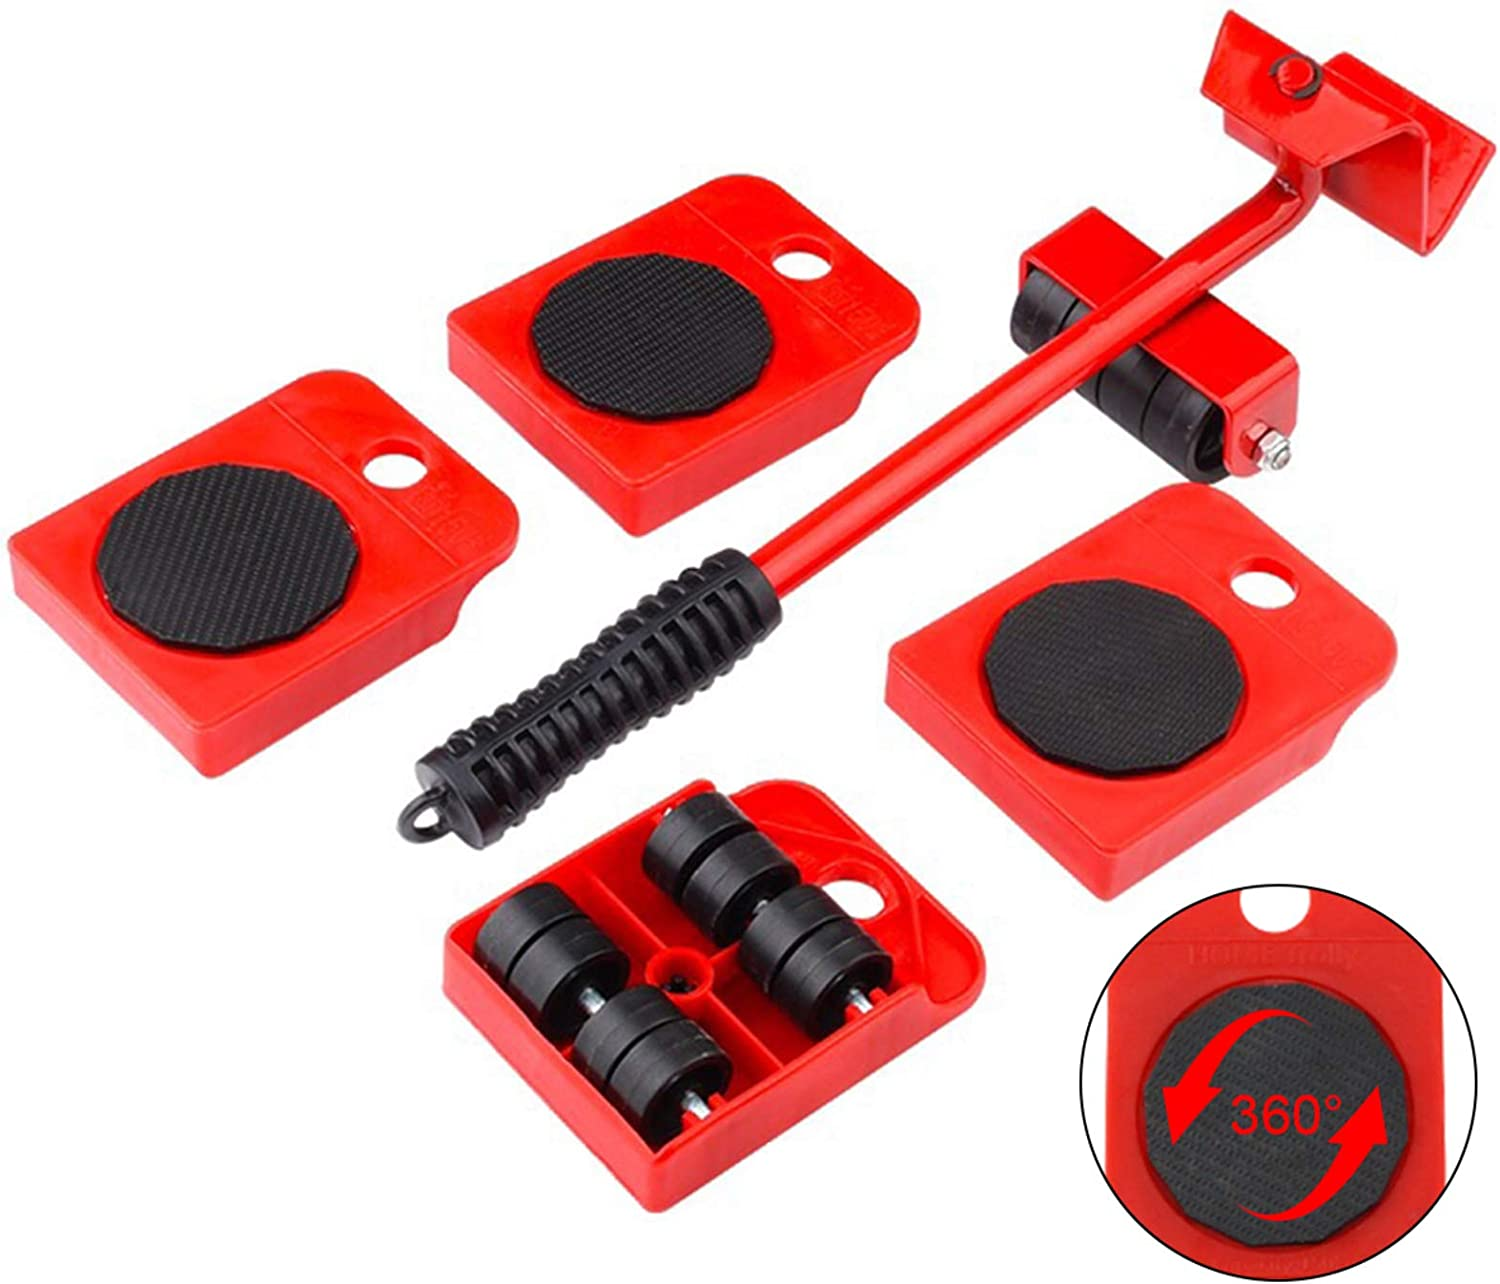 Heavy Duty Furniture Slide Kit - GEMITTO Furniture Lifter with 4 Pcs 360 Degree Rotatable Sliders for Heavy Furniture Easily Redesign and Rearrange